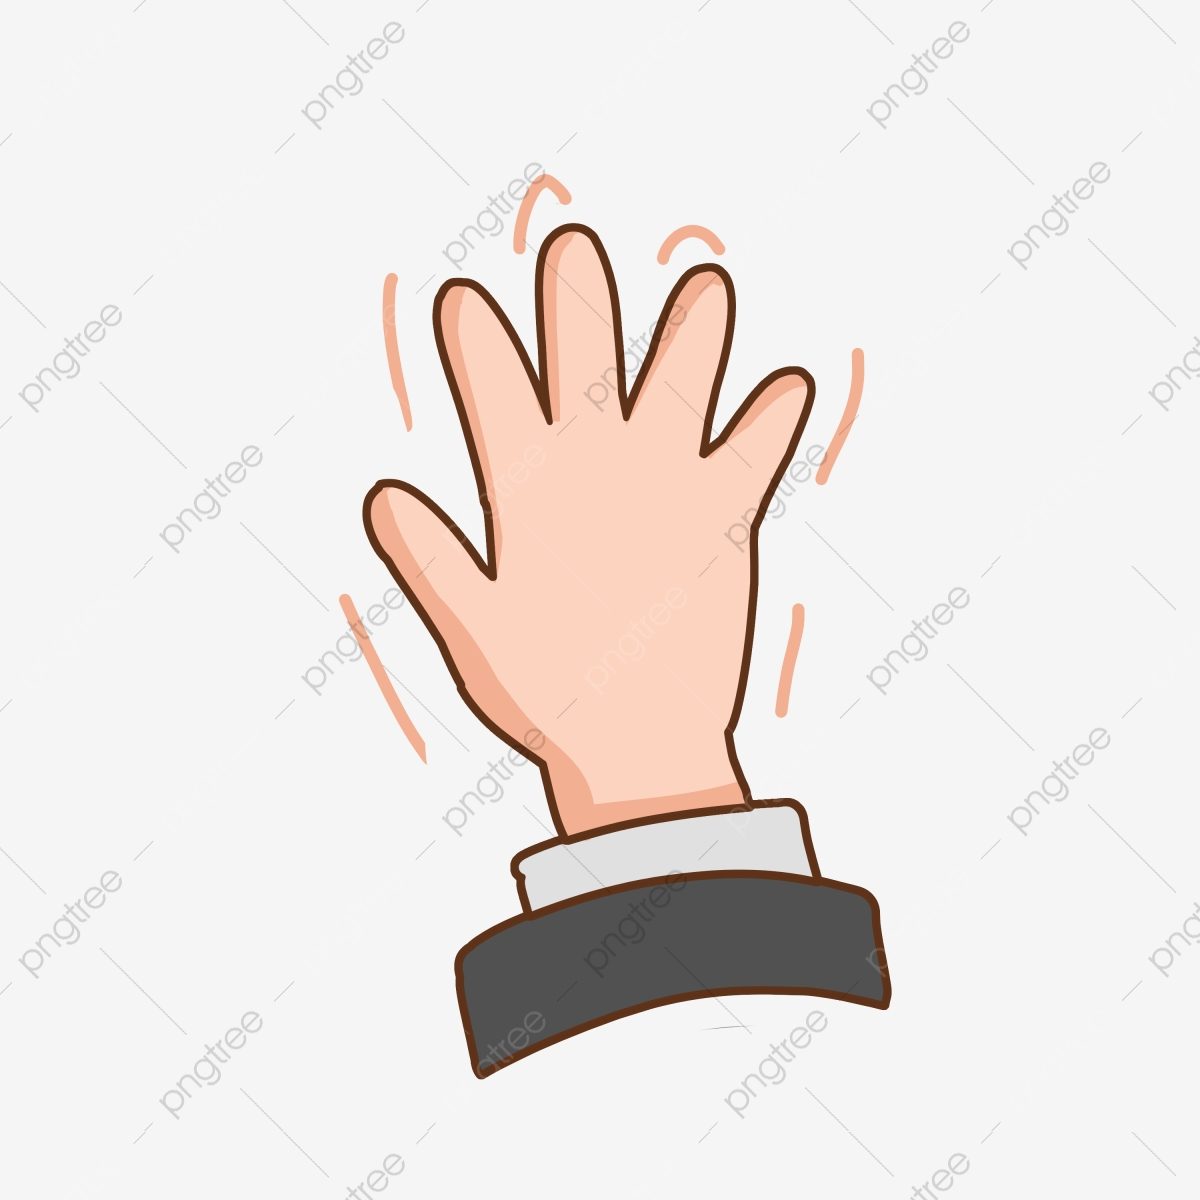 Right Hand Slap Gesture Slap Gesture Gesture Right Hand Png Transparent Clipart Image And Psd File For Free Download Download transparent hand png for free on pngkey.com. https pngtree com freepng right hand slap gesture 4521086 html